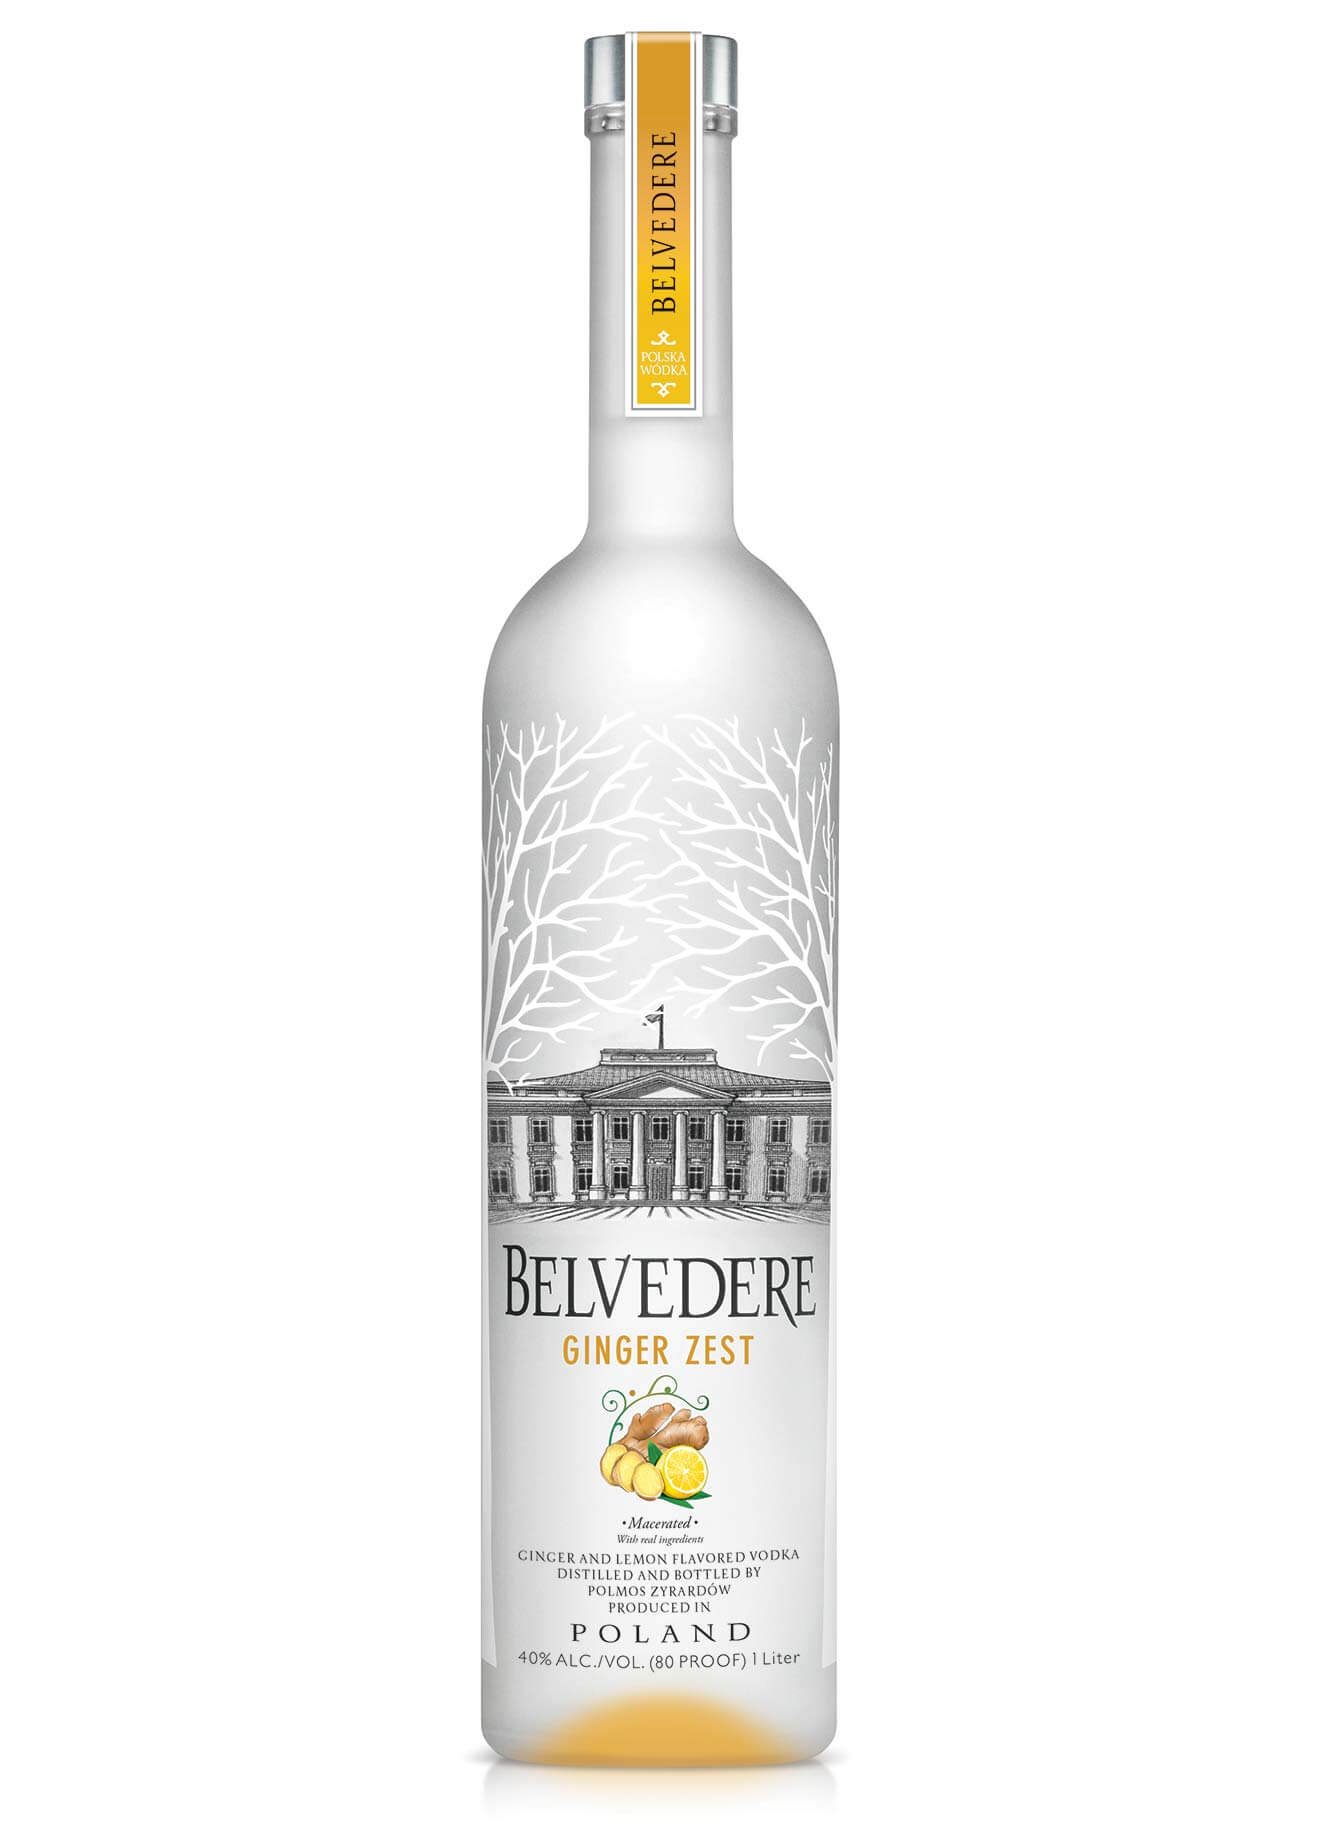 Belvedere Vodka Launches Ginger Zest, bottle on white, featured image